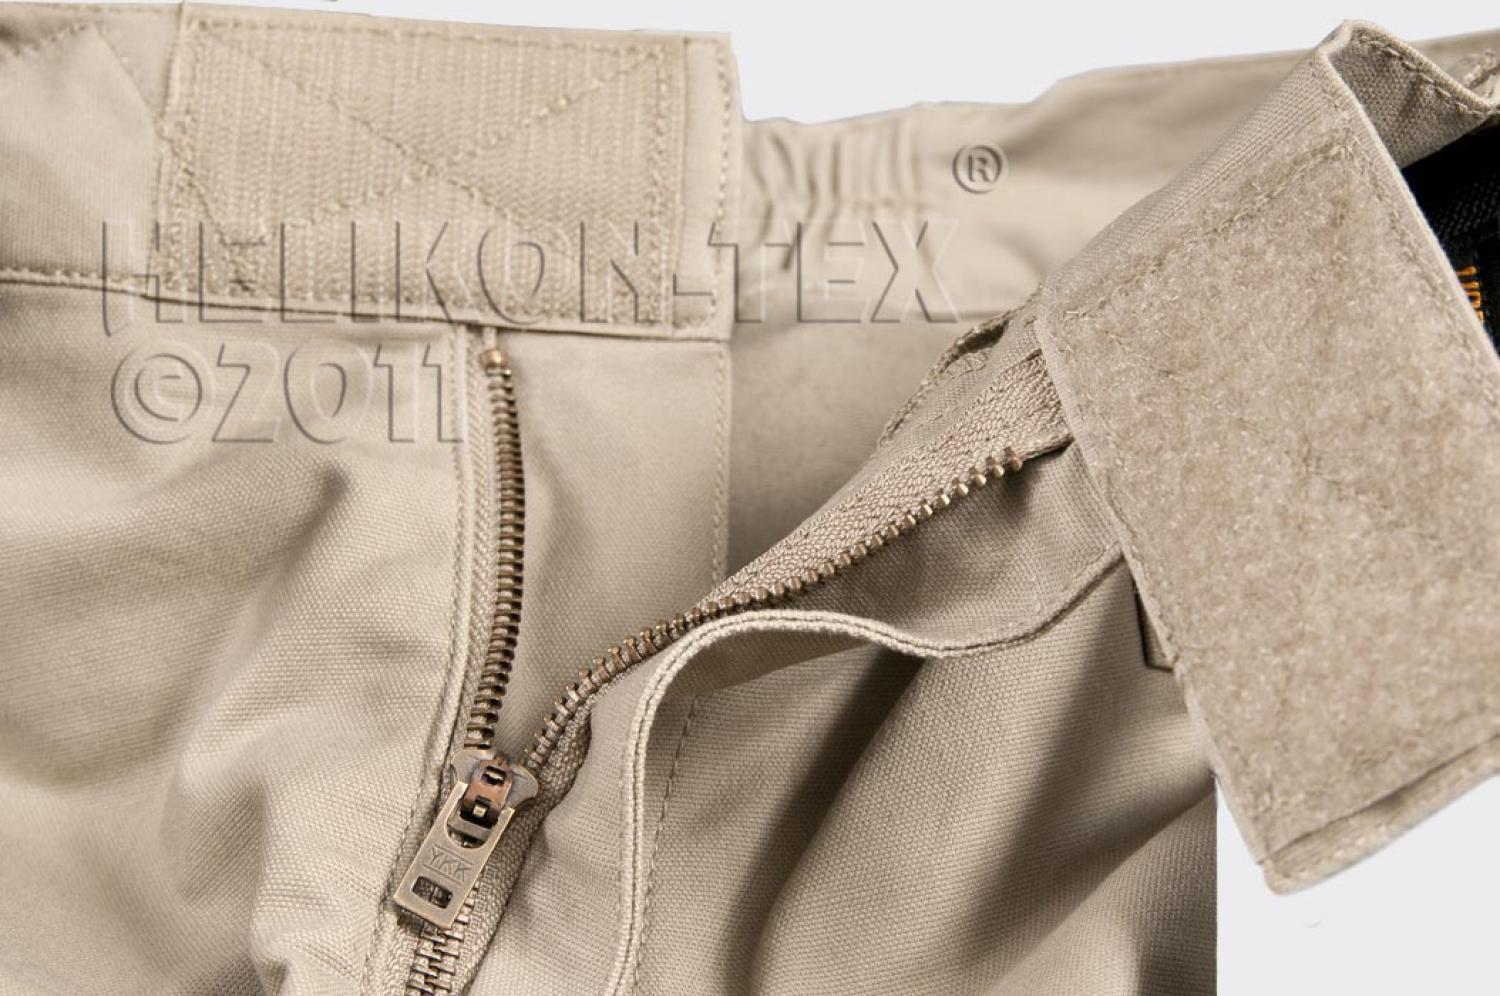 Helikon Helikon Helikon TEX Urban Tactical Pants UTP Tempo Libero Pantaloni Denim blu MR MEDIUM REGULAR f66738